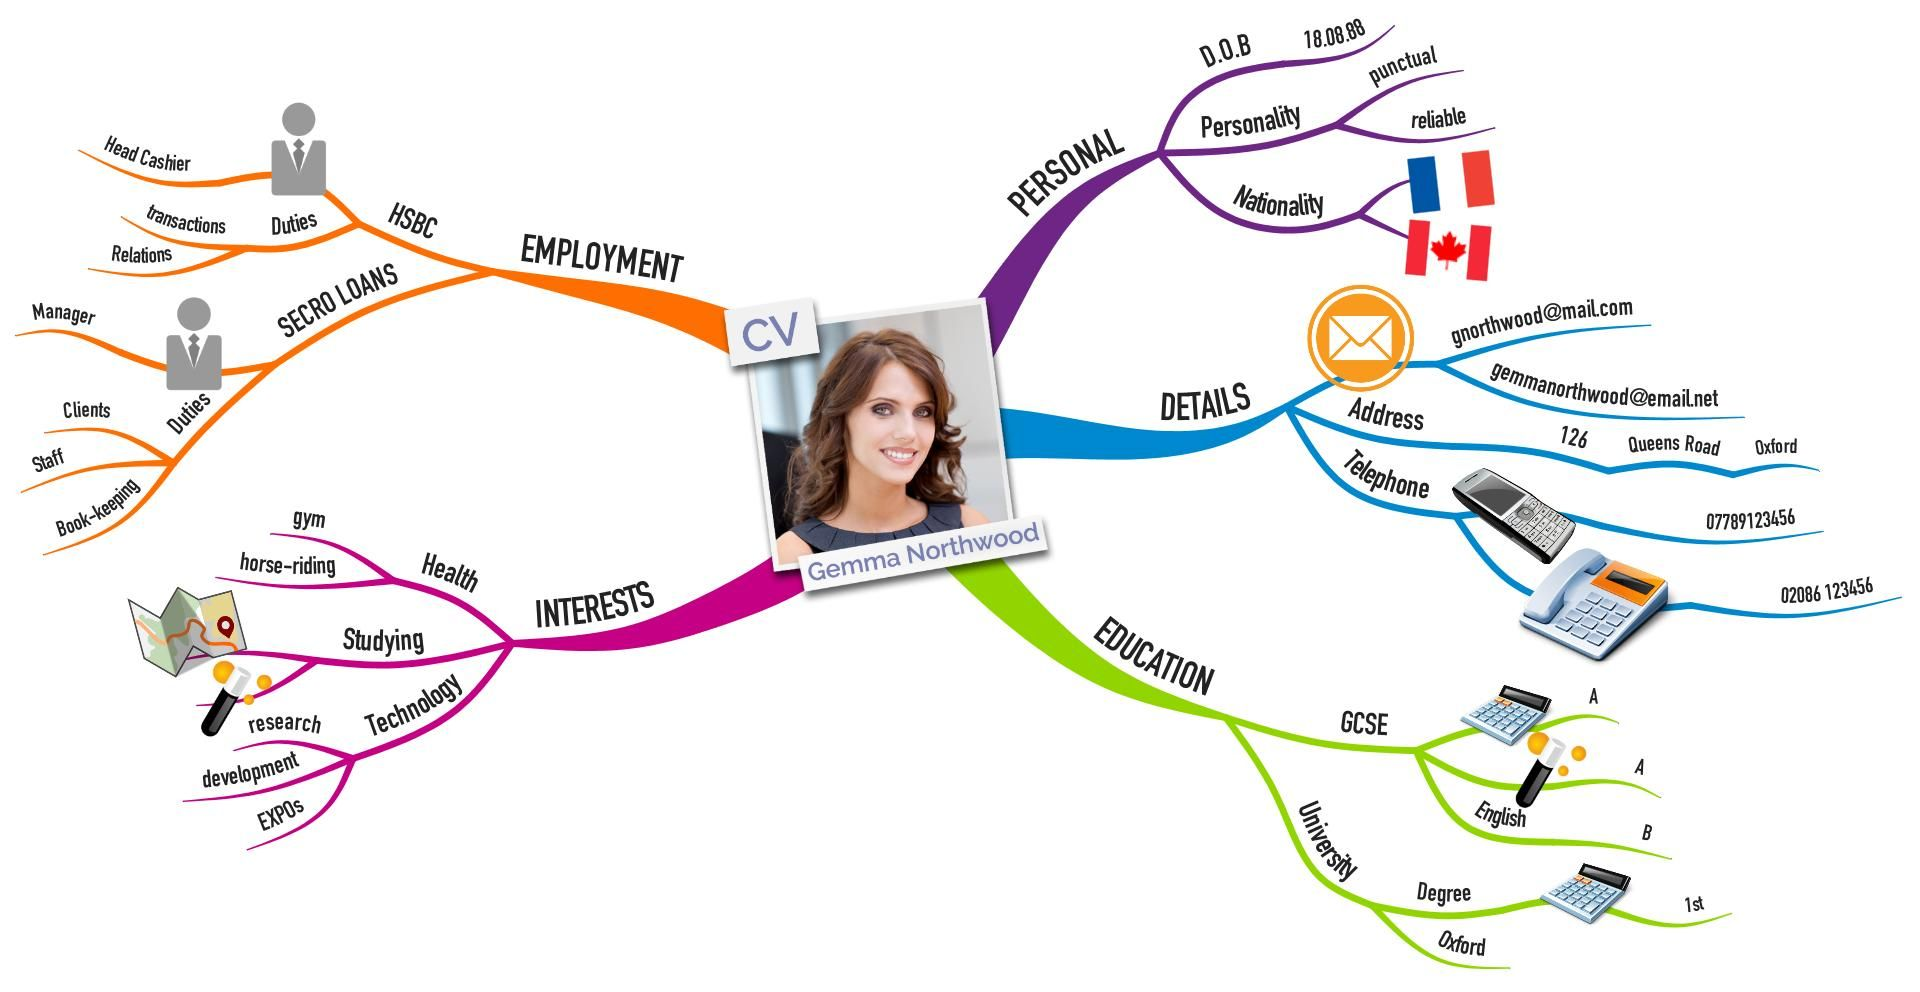 Curriculum Vitae Mind Map by Gemma Northwood | Mind Maps in ...